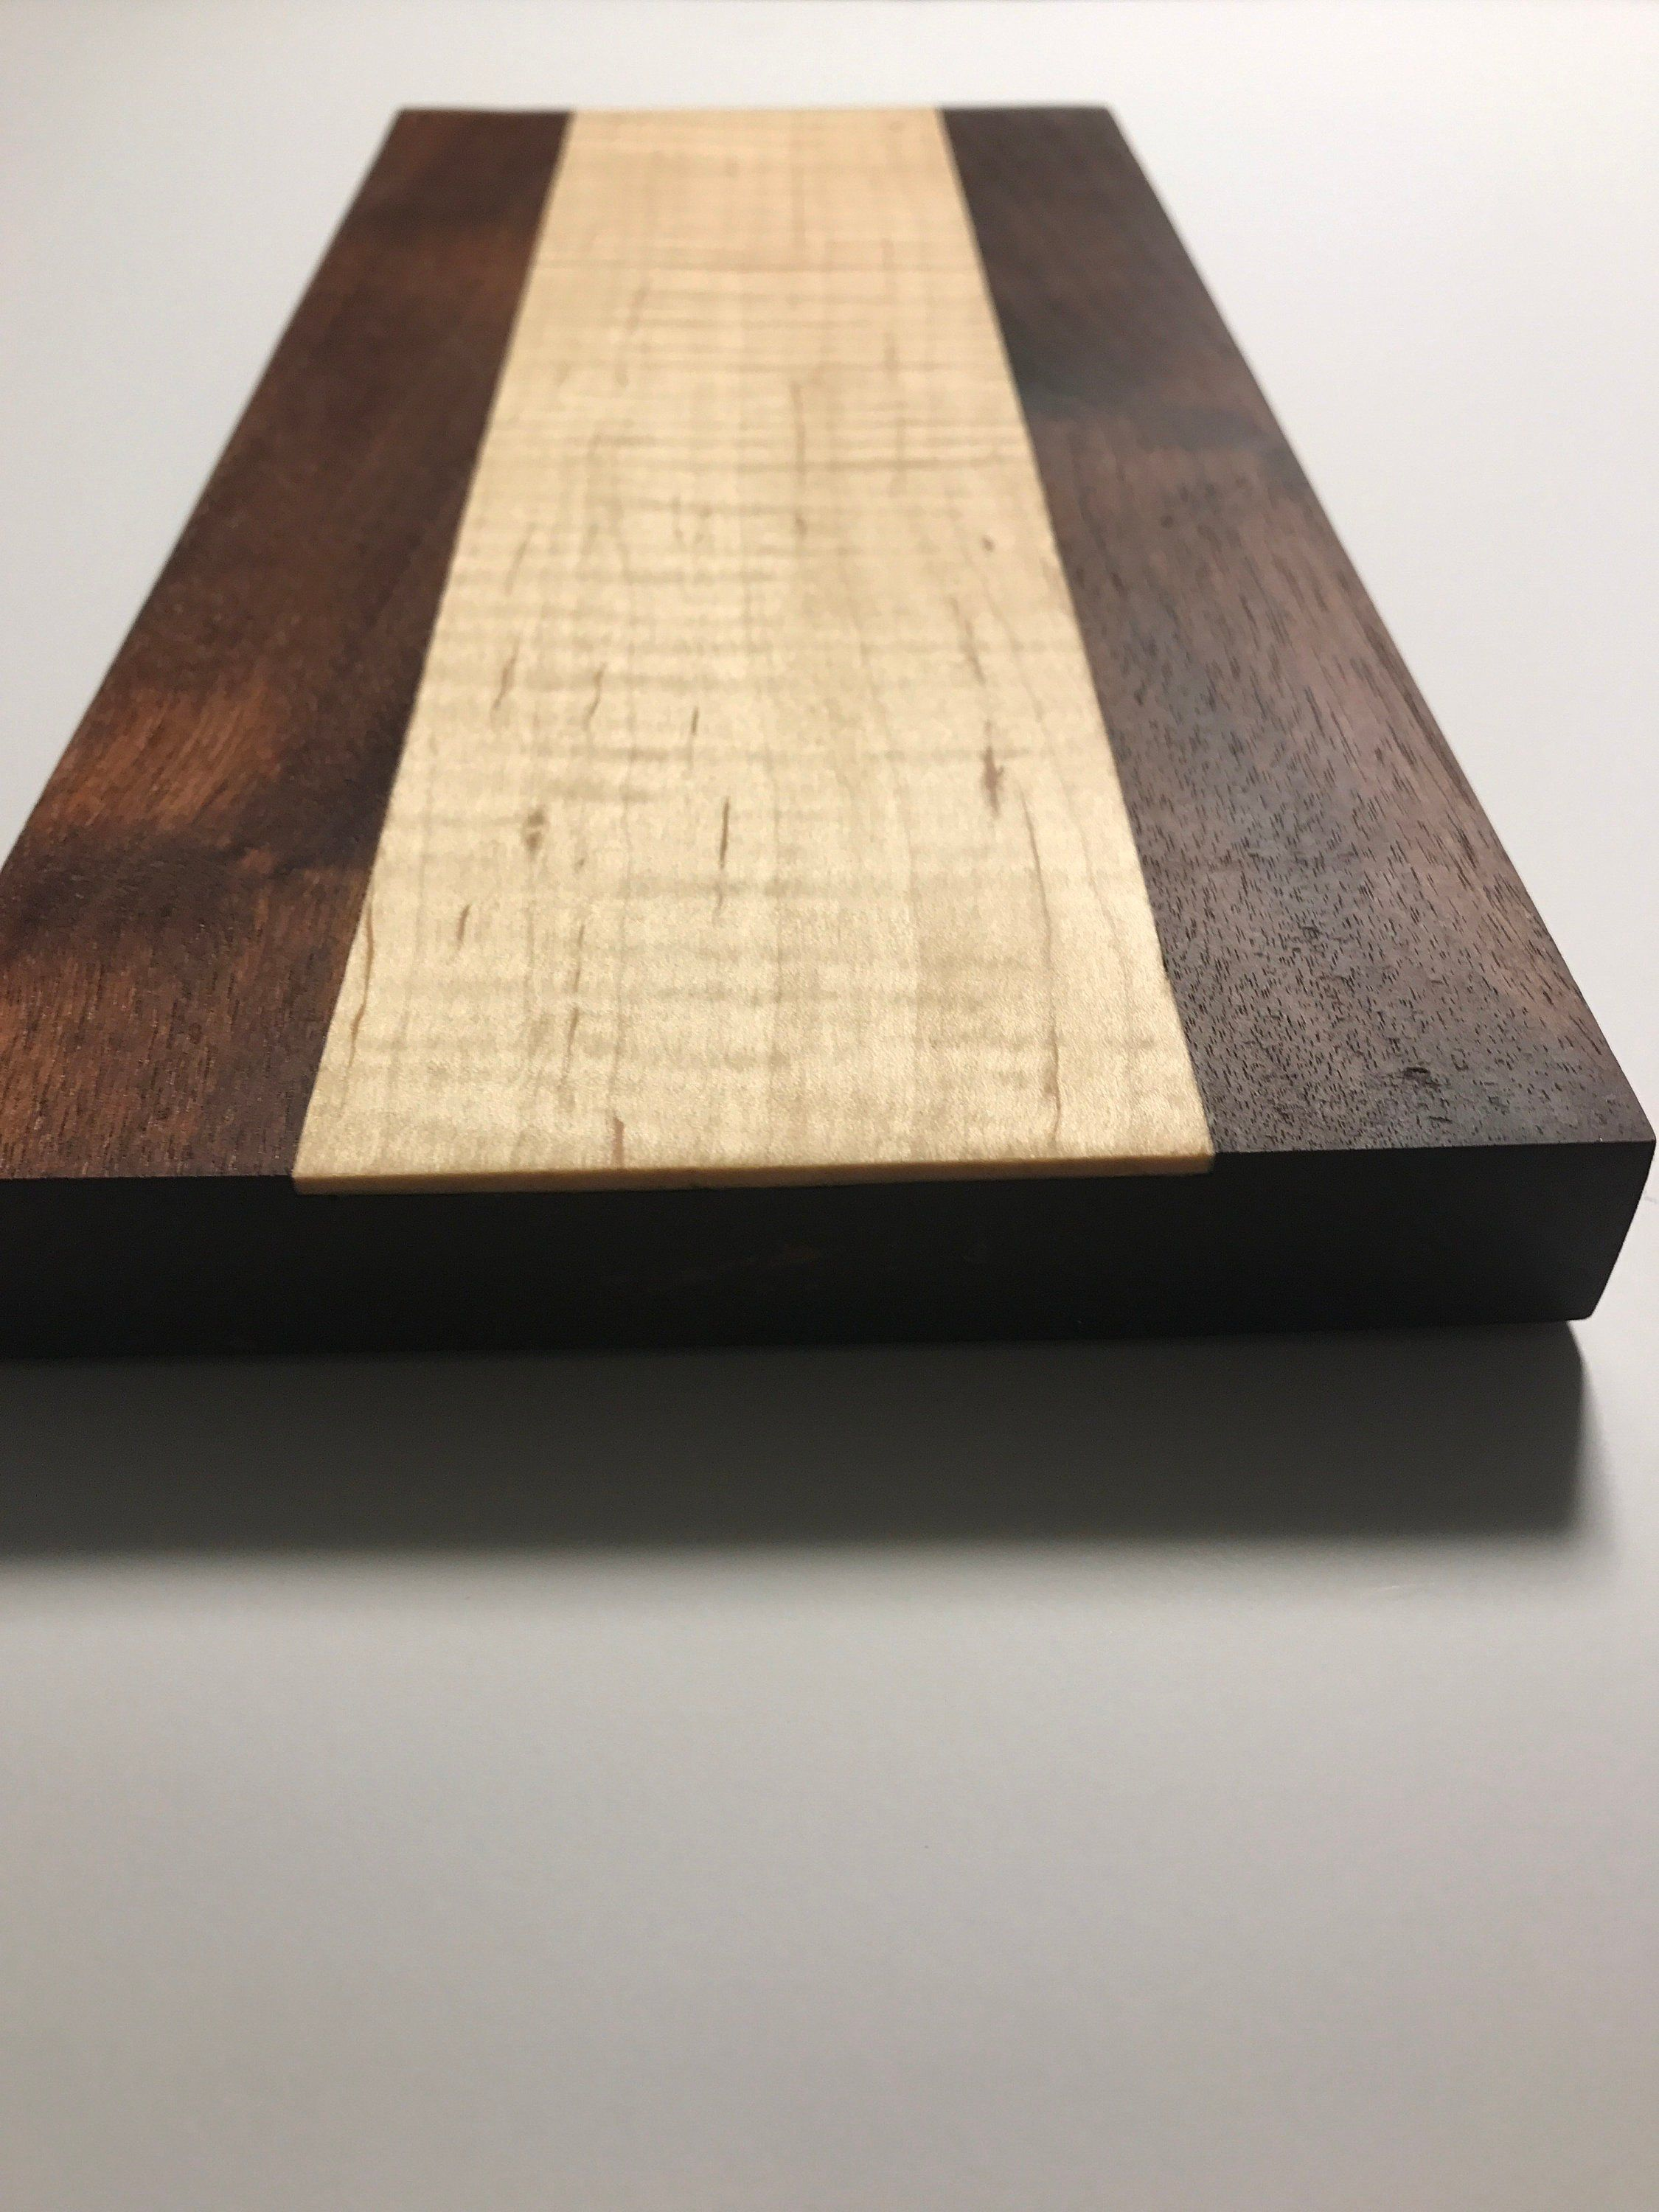 Pin By Keith Collins On Wood Projects Wood Projects Magnetic Knife Rack Butcher Block Oil